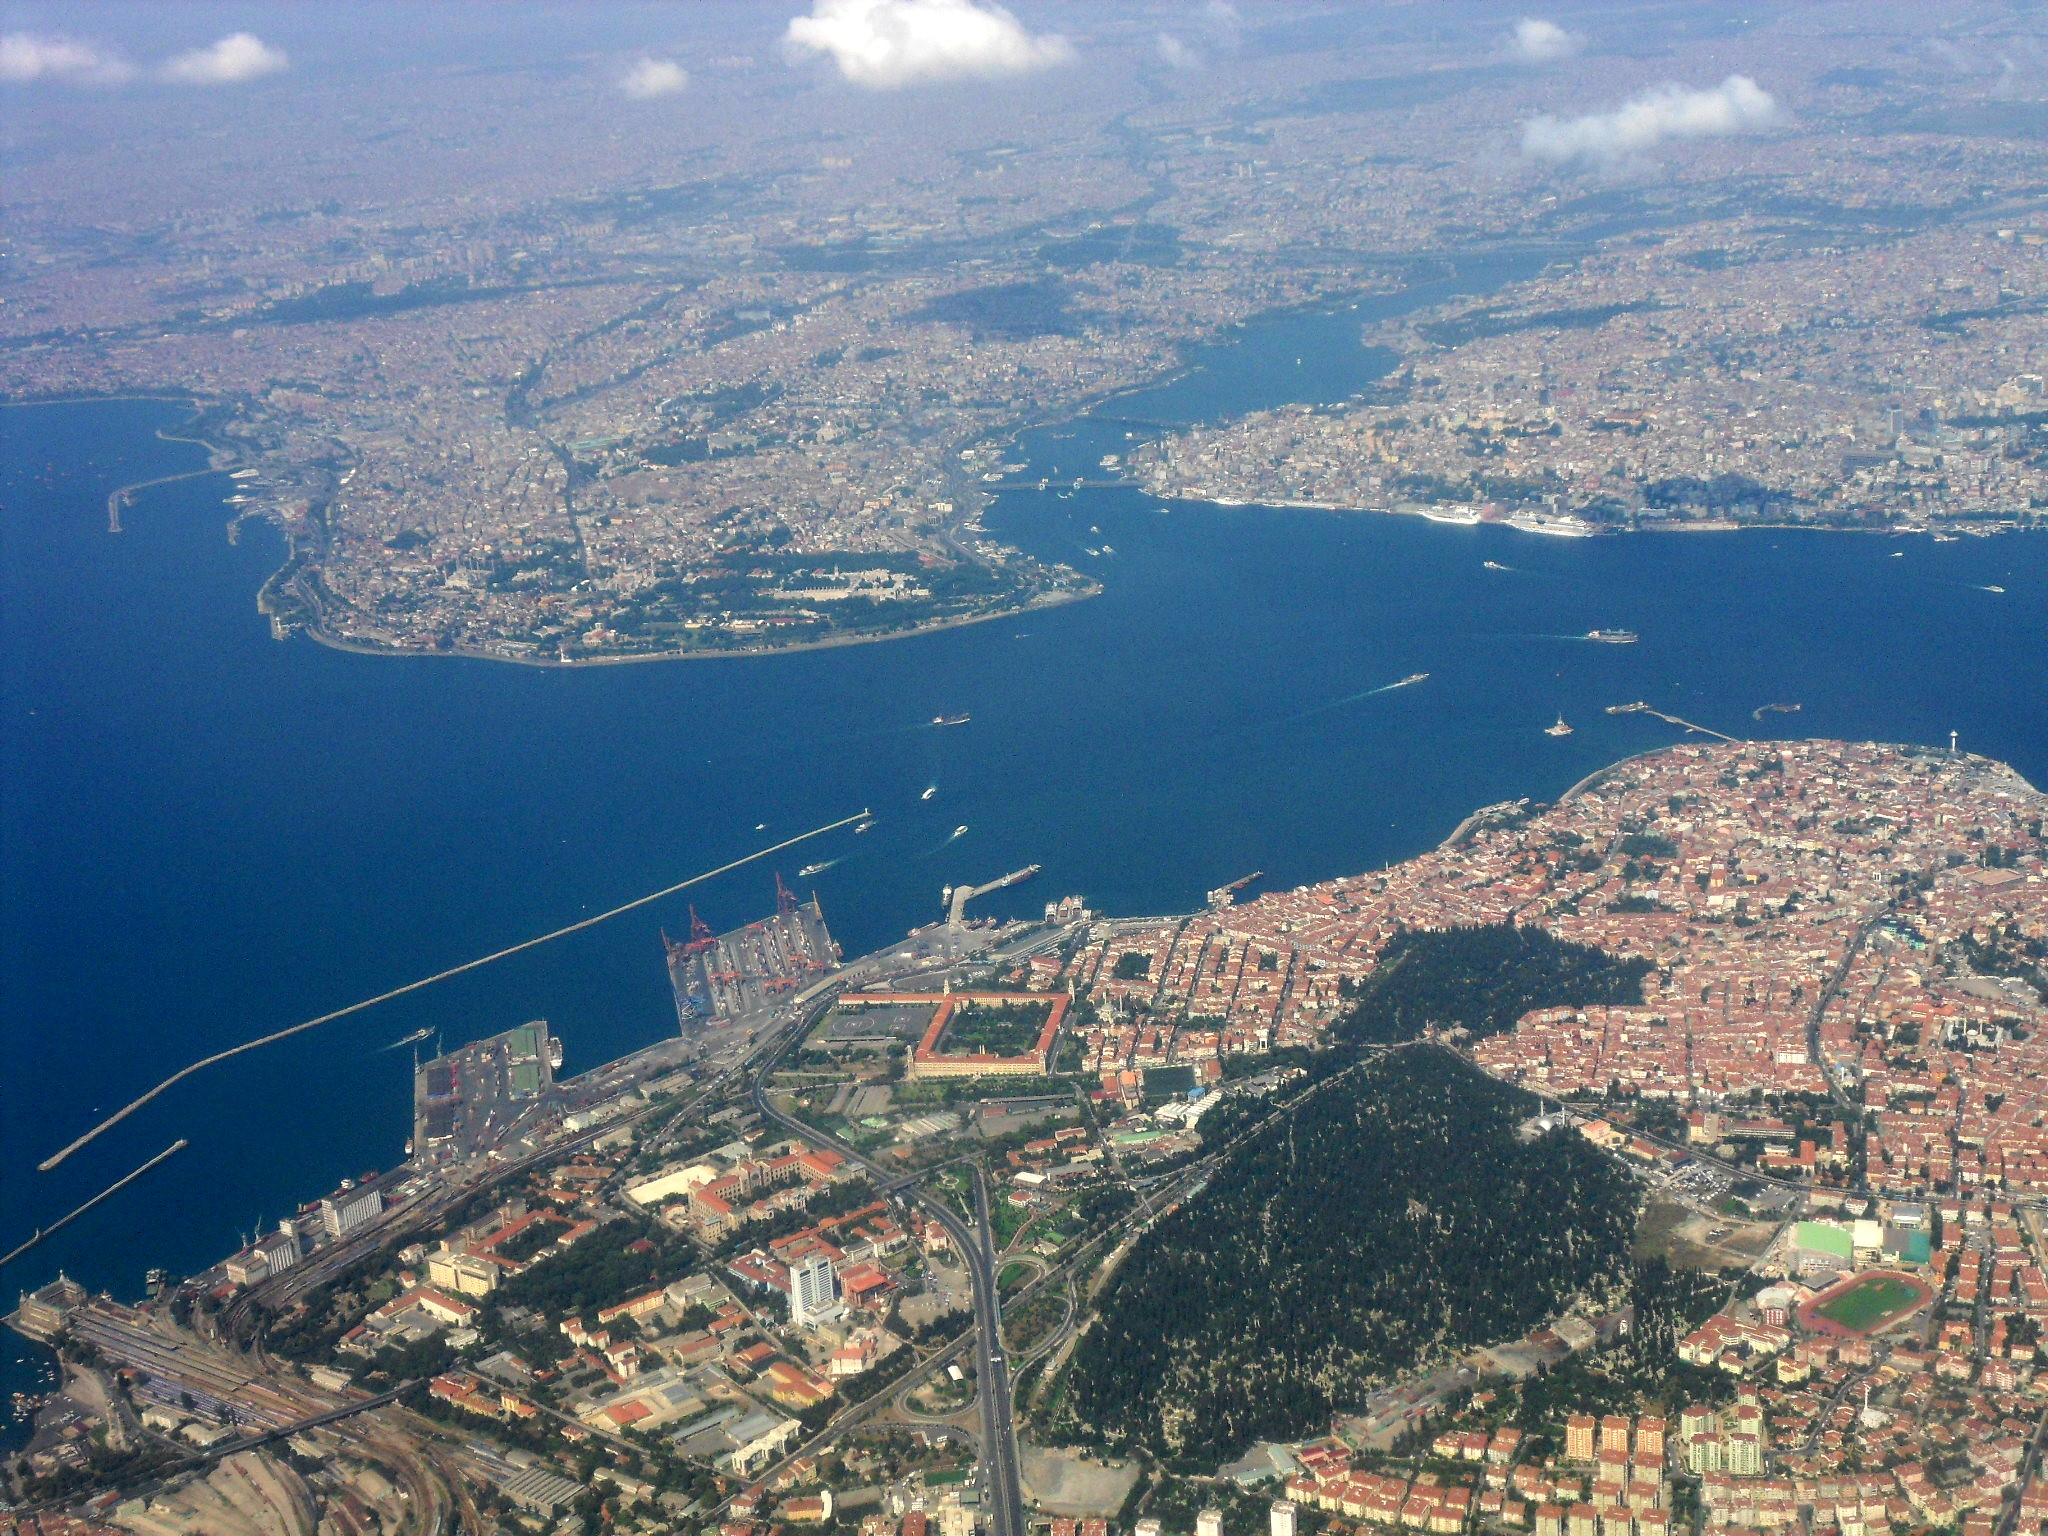 https://assets.sourcemedia.com/f9/36/8fc488c1432ea647876c5312c78c/heart-of-istanbul-from-air.jpg